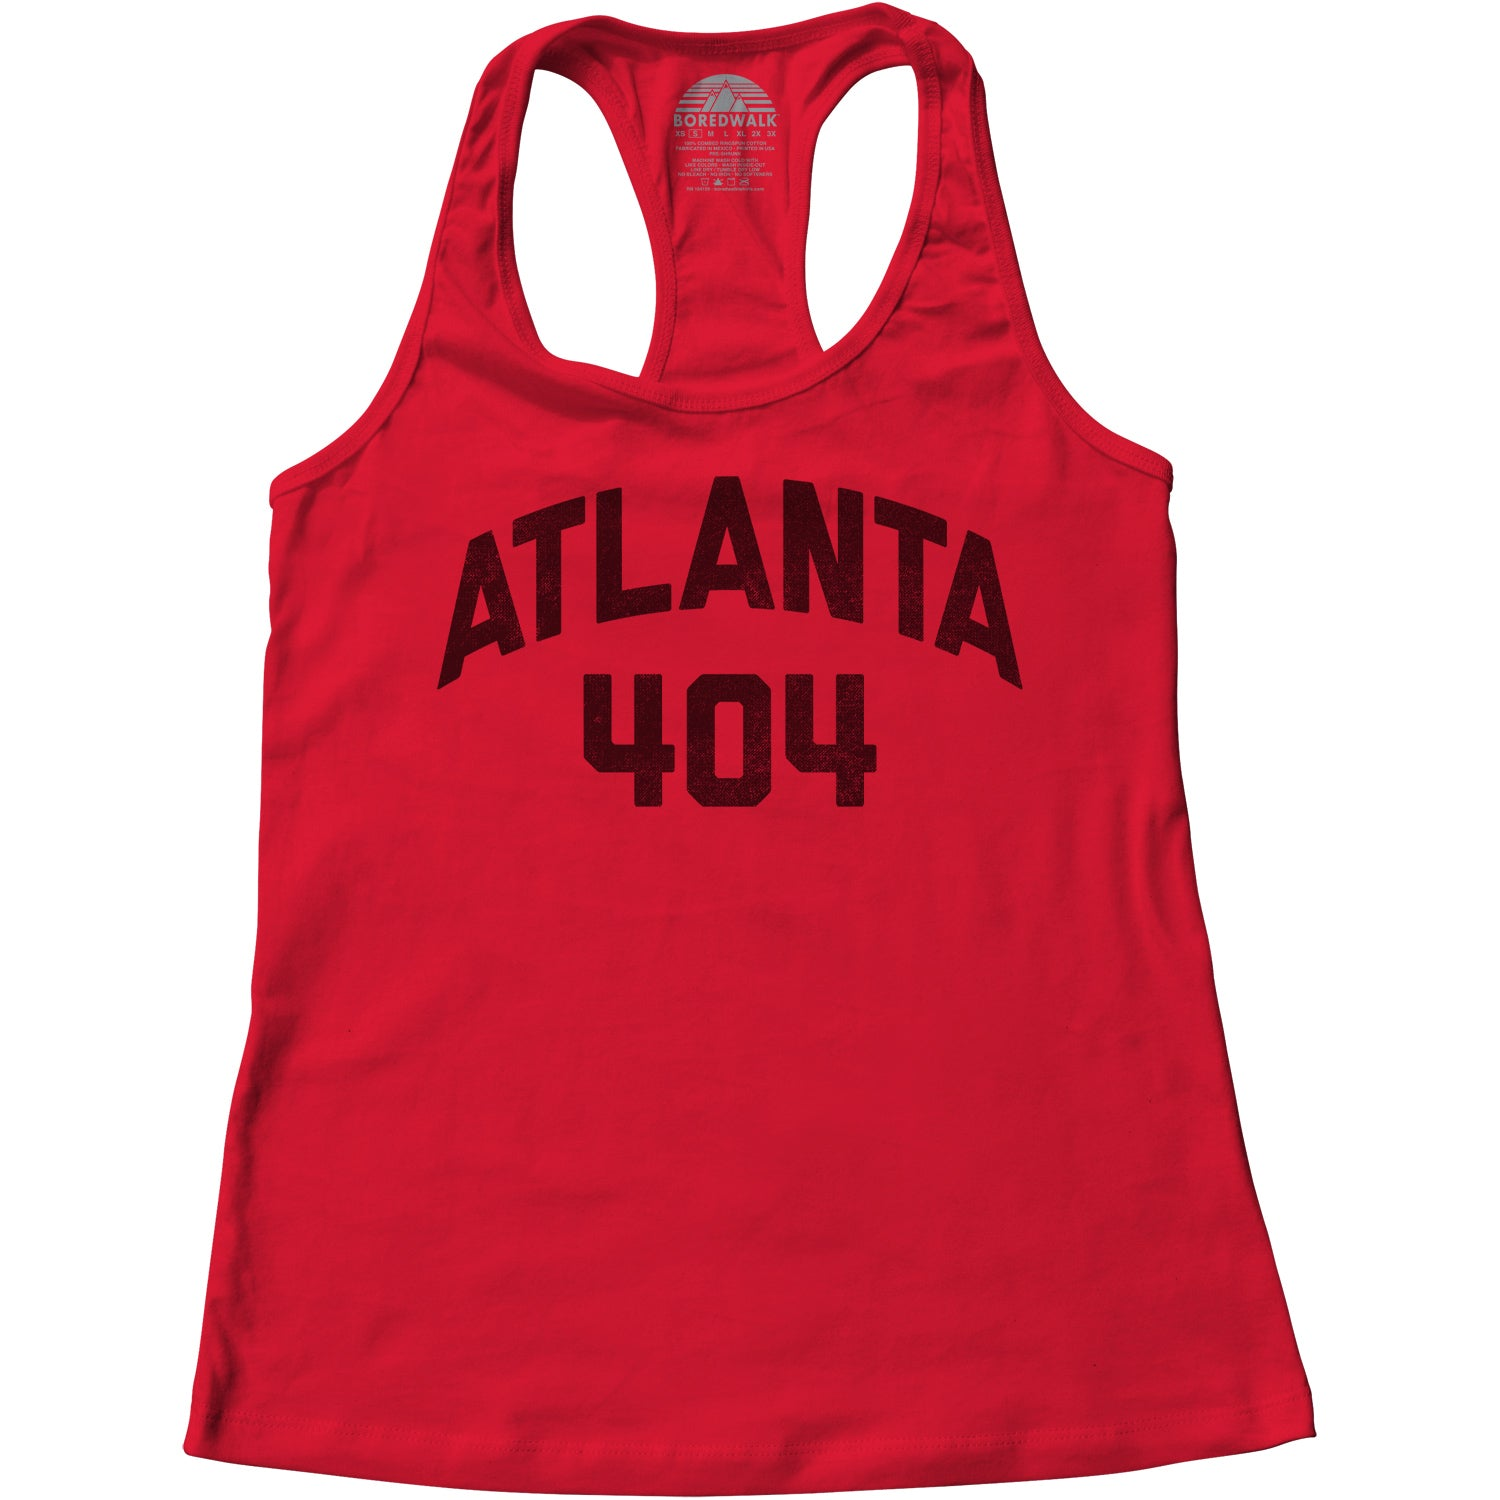 Women's Atlanta 404 Area Code Racerback Tank Top